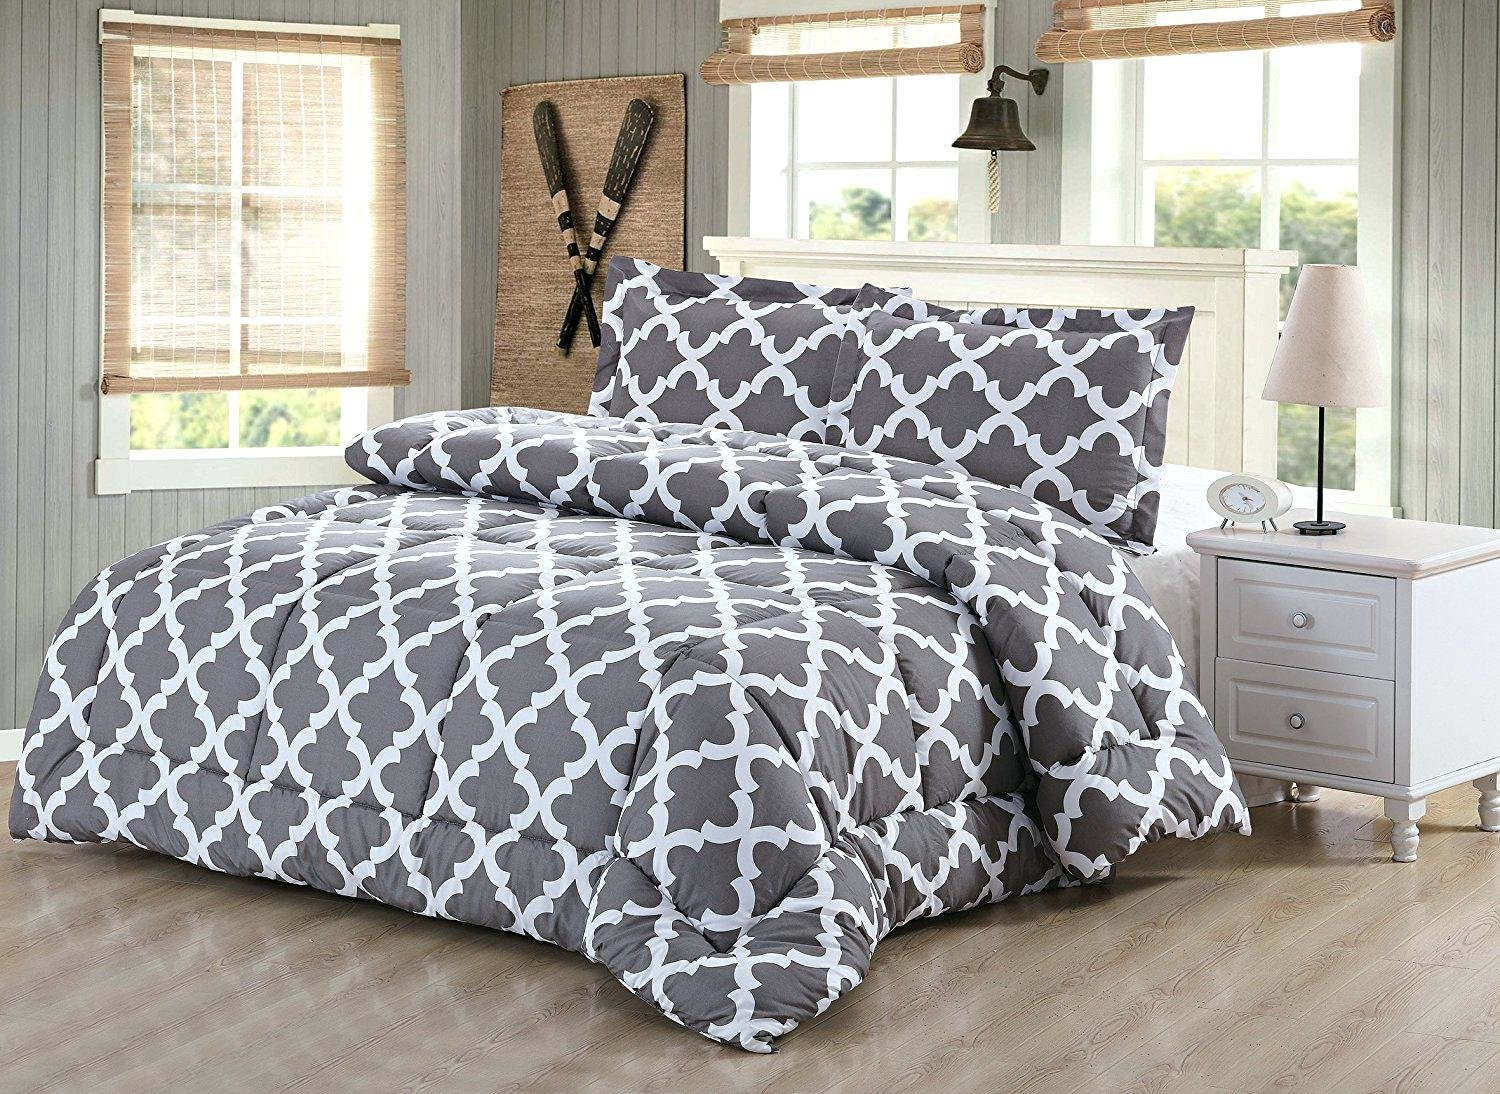 Best Bedroom Wonderful Bedroom Decor With Walmart Bedspreads With Pictures